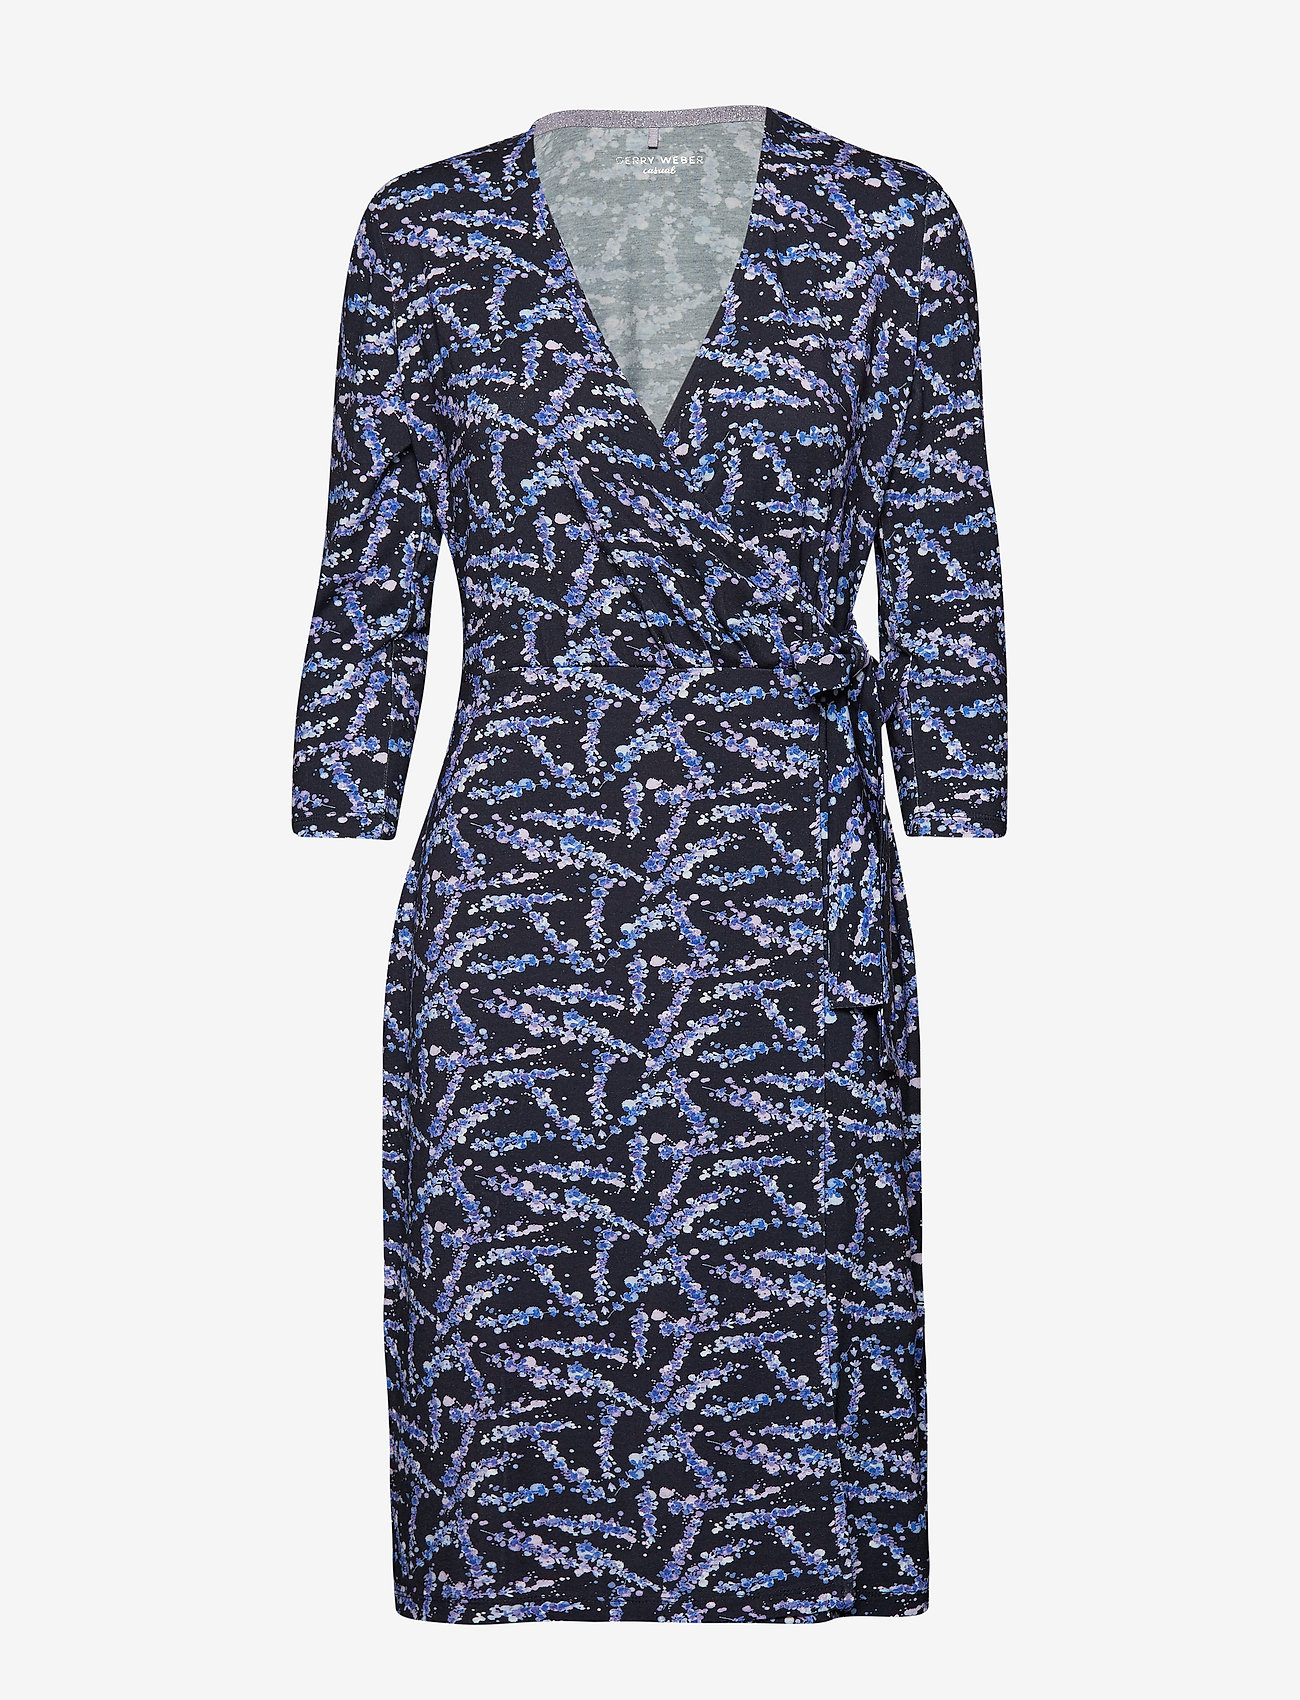 Gerry Weber Edition - DRESS KNITTED FABRIC - wrap dresses - blue/lilac/pink print